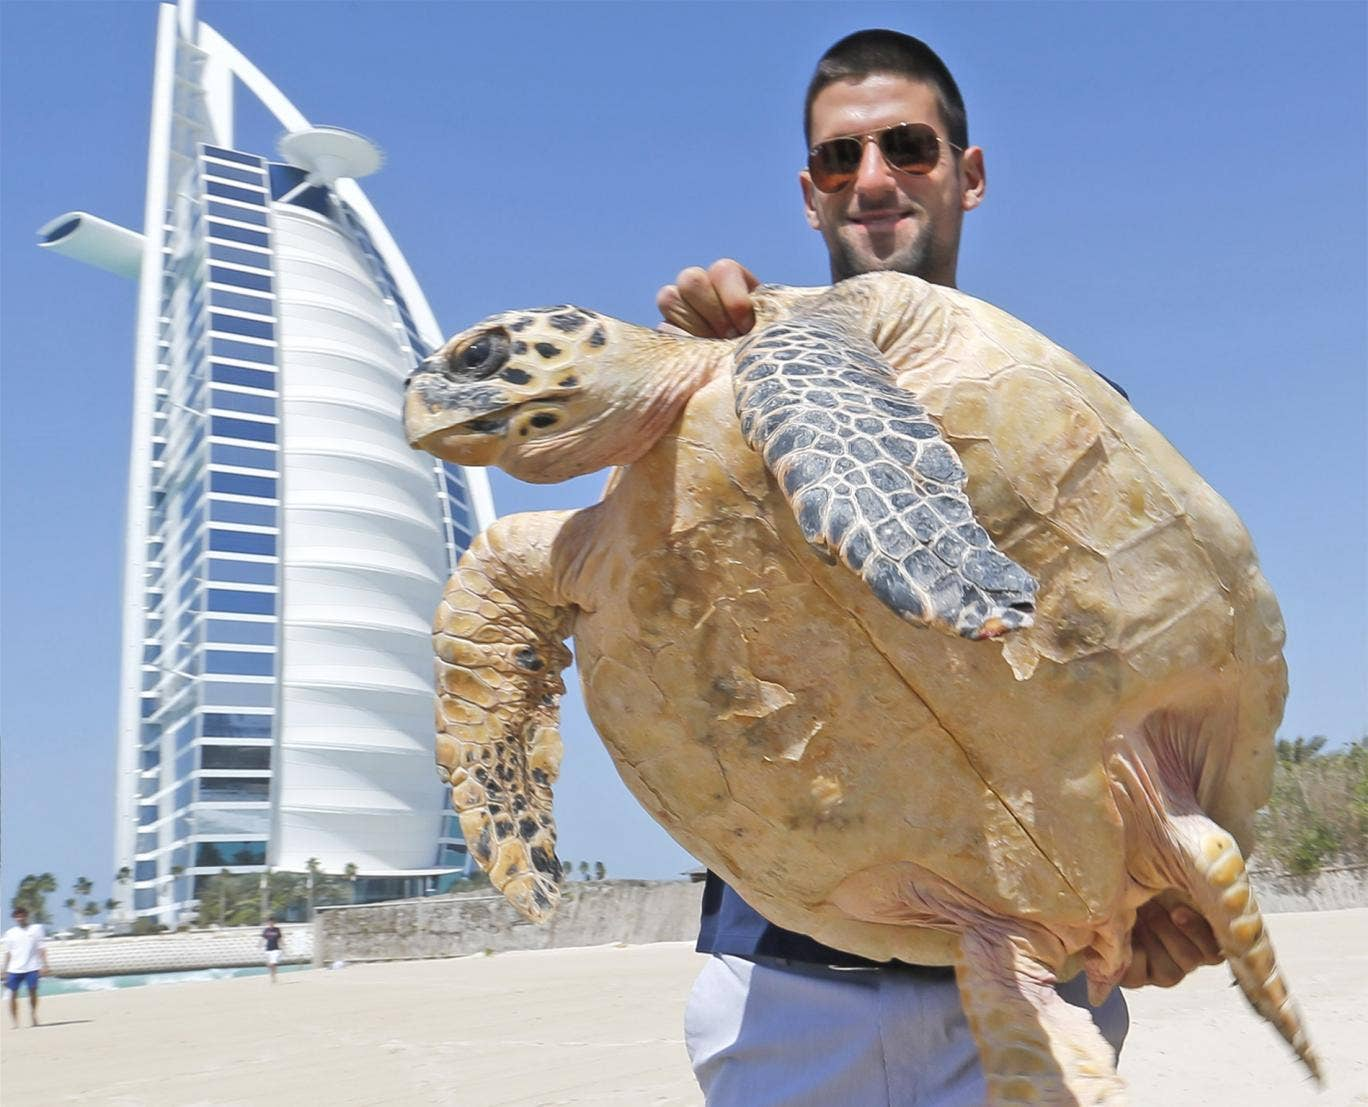 Relaxed Novak Djokovic poses with a hawksbill sea turtle in Dubai